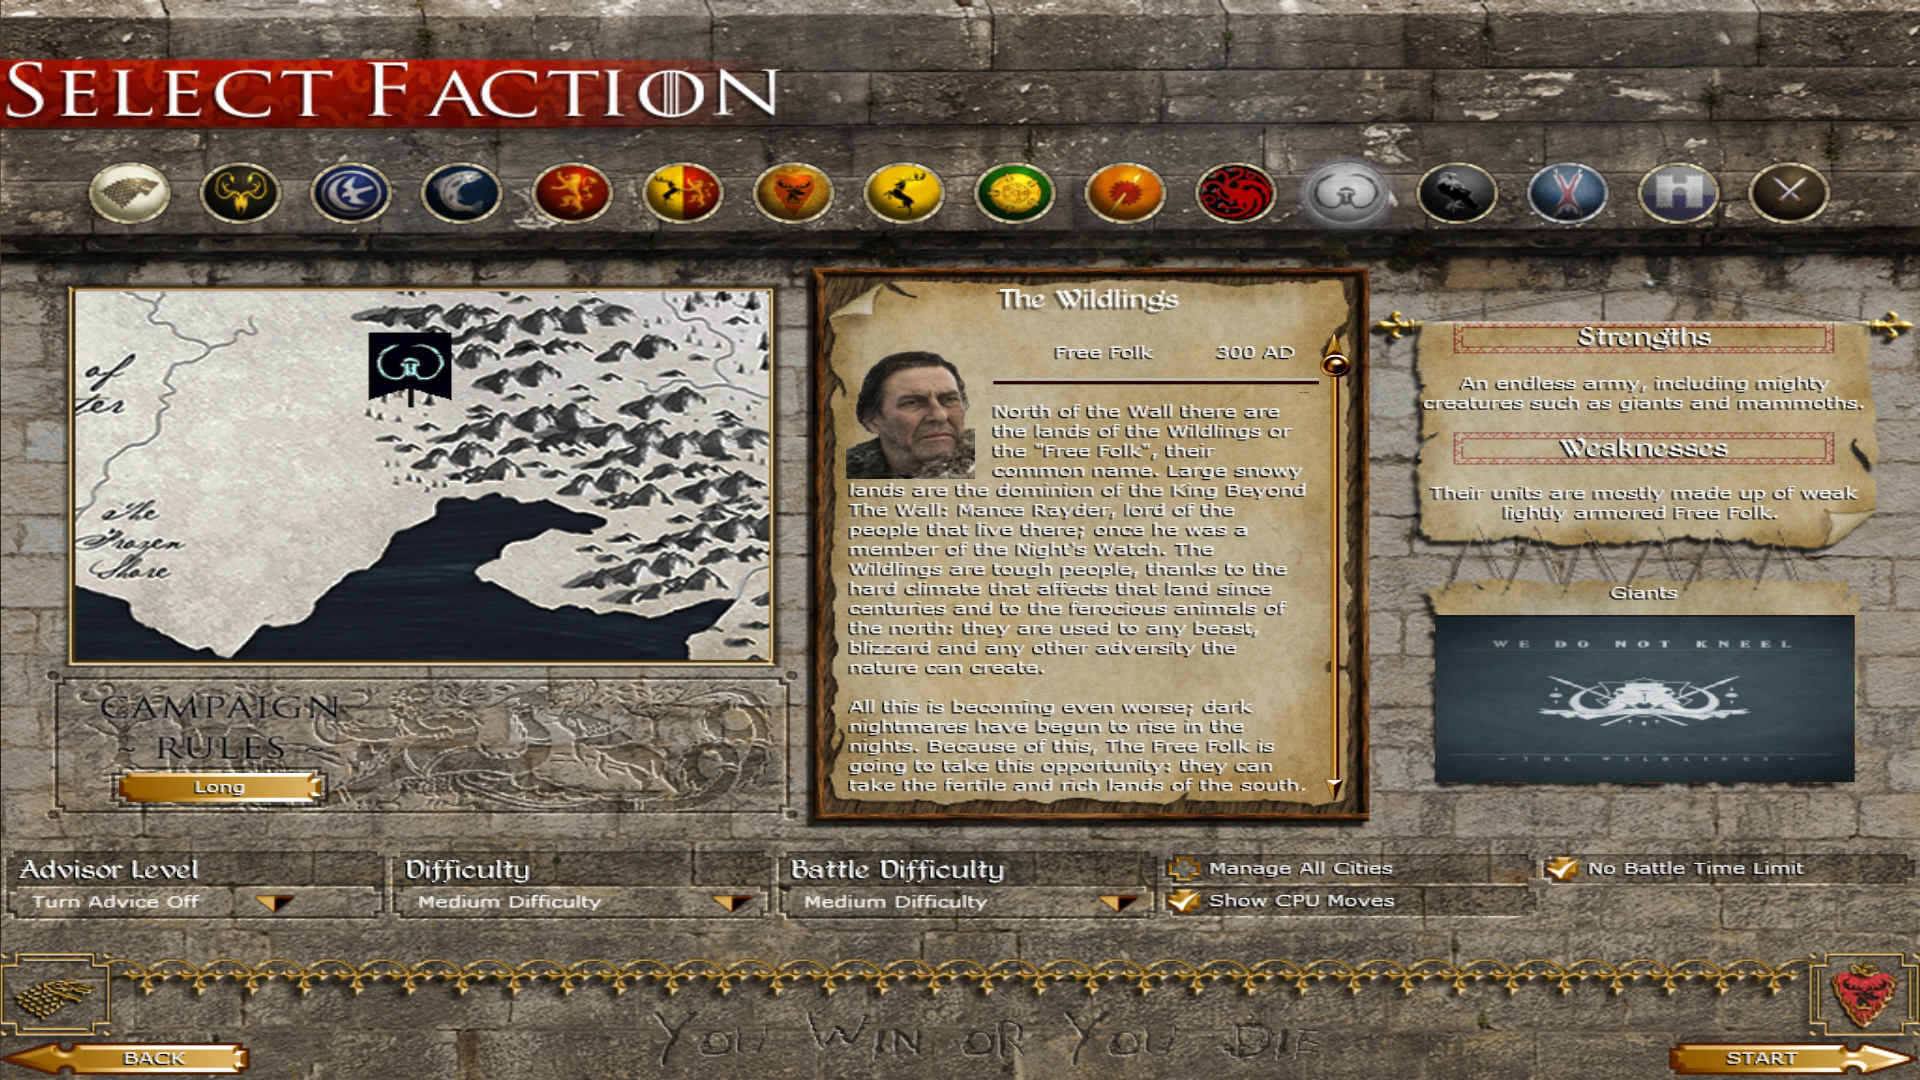 Wildlings/Free Folk Faction selection screen done!